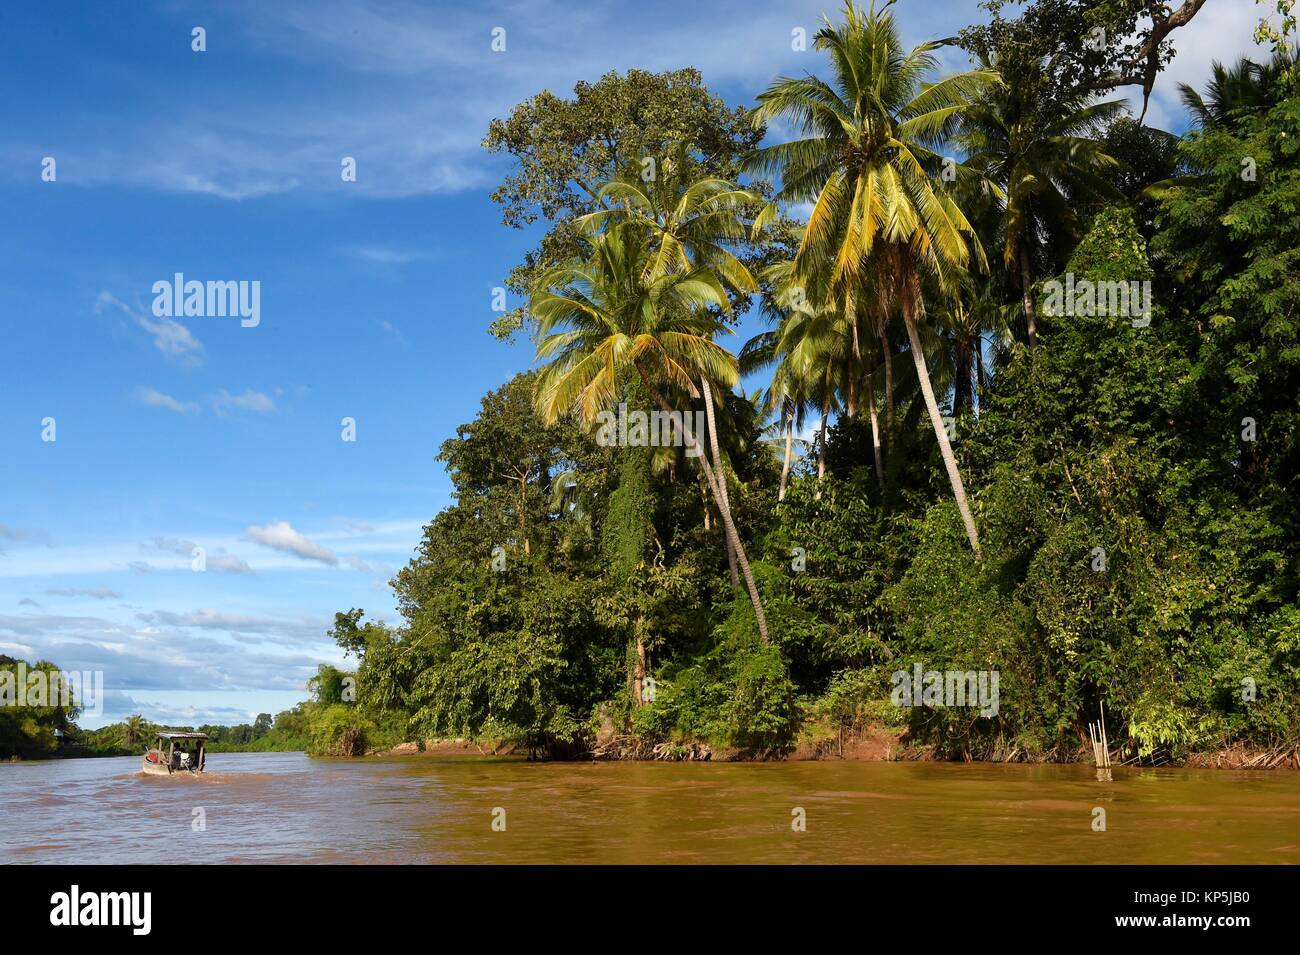 Done Det island in the four thousand islands area,Si Phan Don,of the Mekong river,South Laos,Southeast Asia. - Stock Image